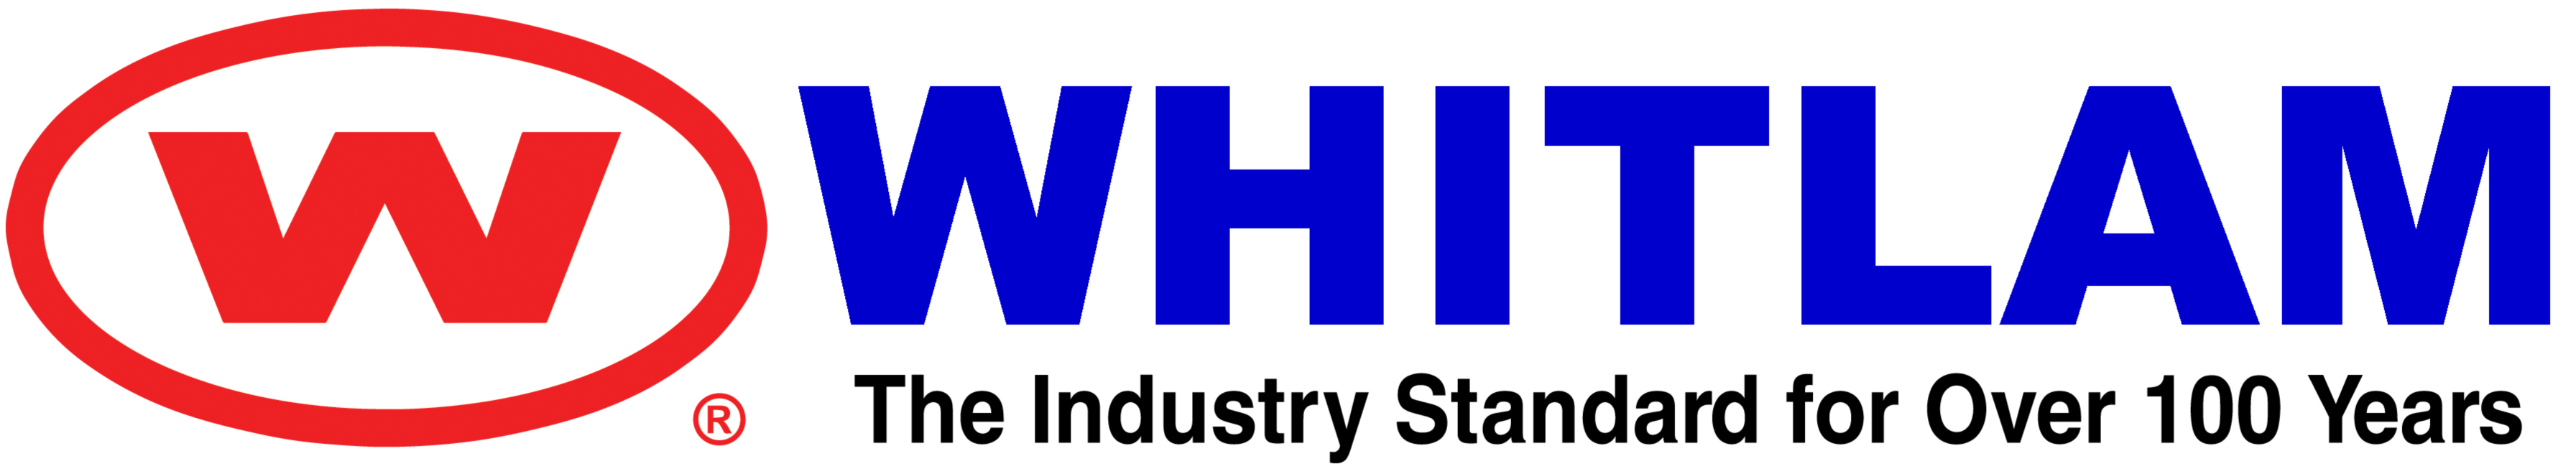 whitlam logo link to https://www.jcwhitlam.com/SafetyDataSheets